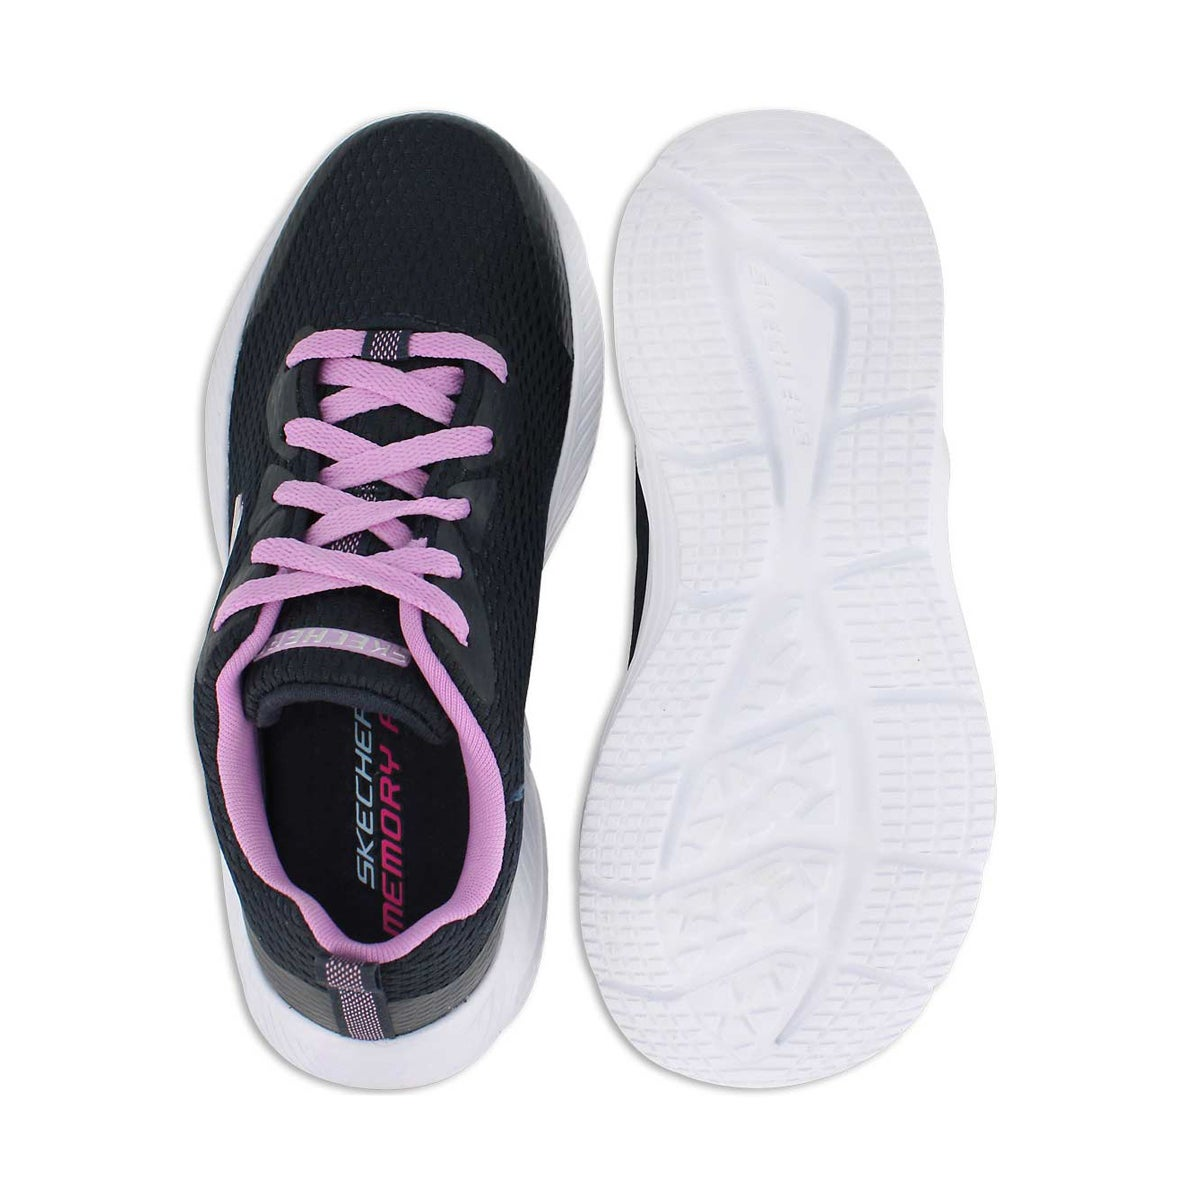 Grls Dyna-Air nvy/lvndr lace up sneaker